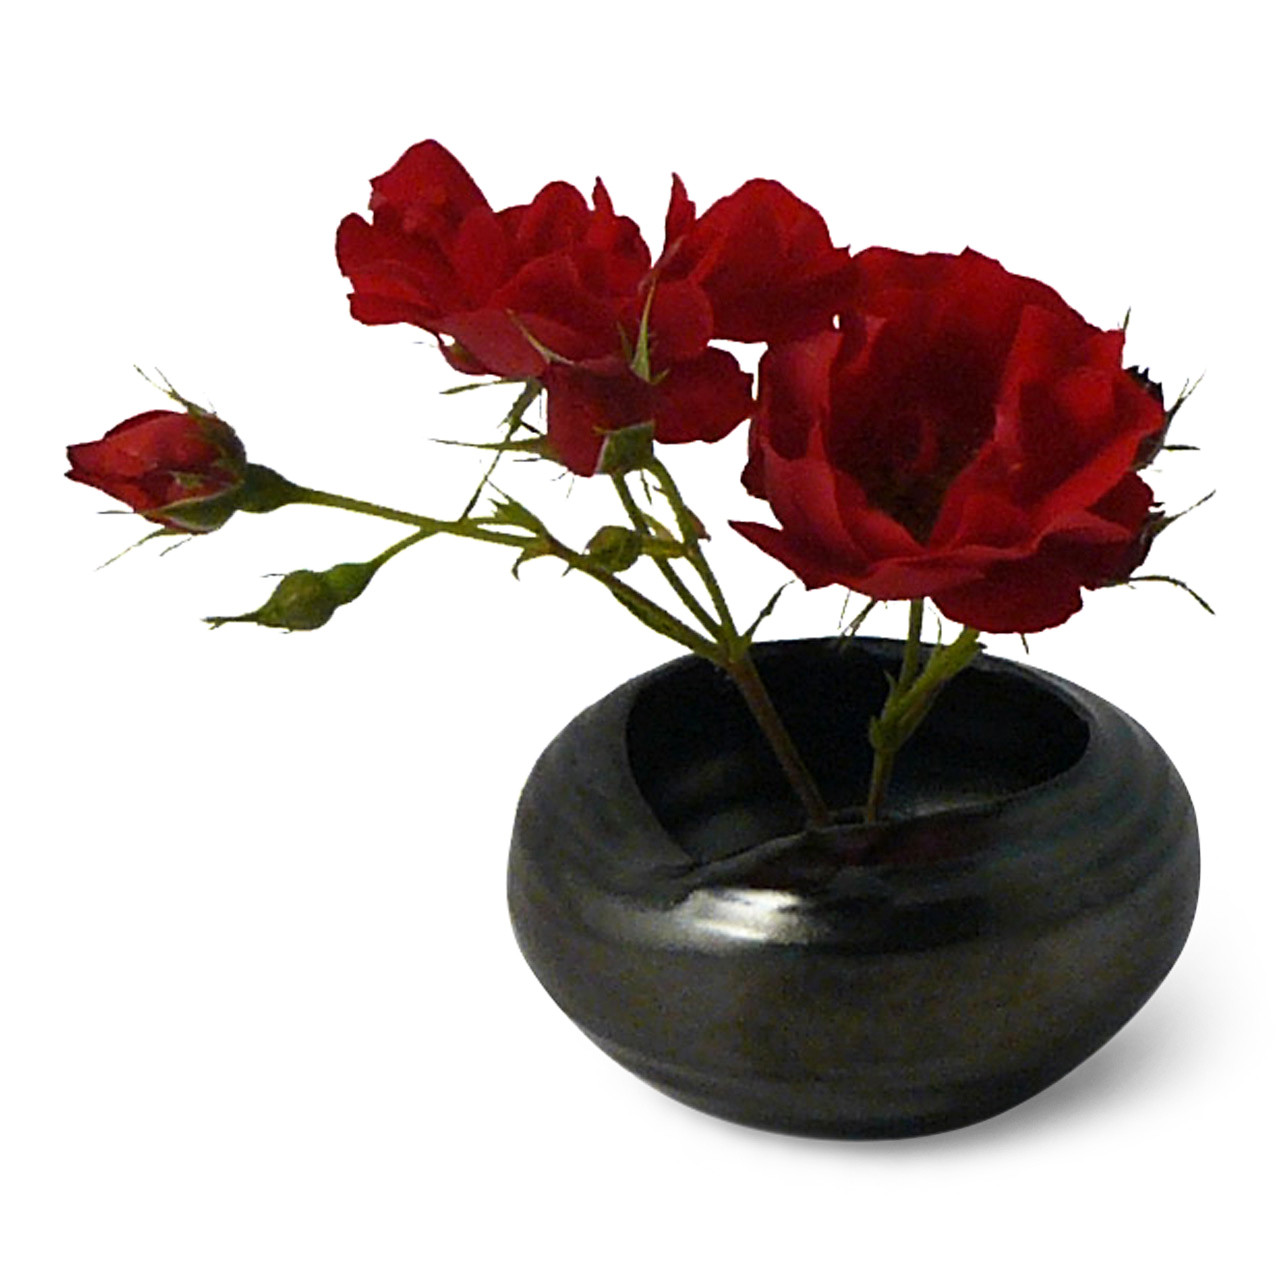 Black luster vase for small flower arrangements ziji black luster vase with flowers reviewsmspy